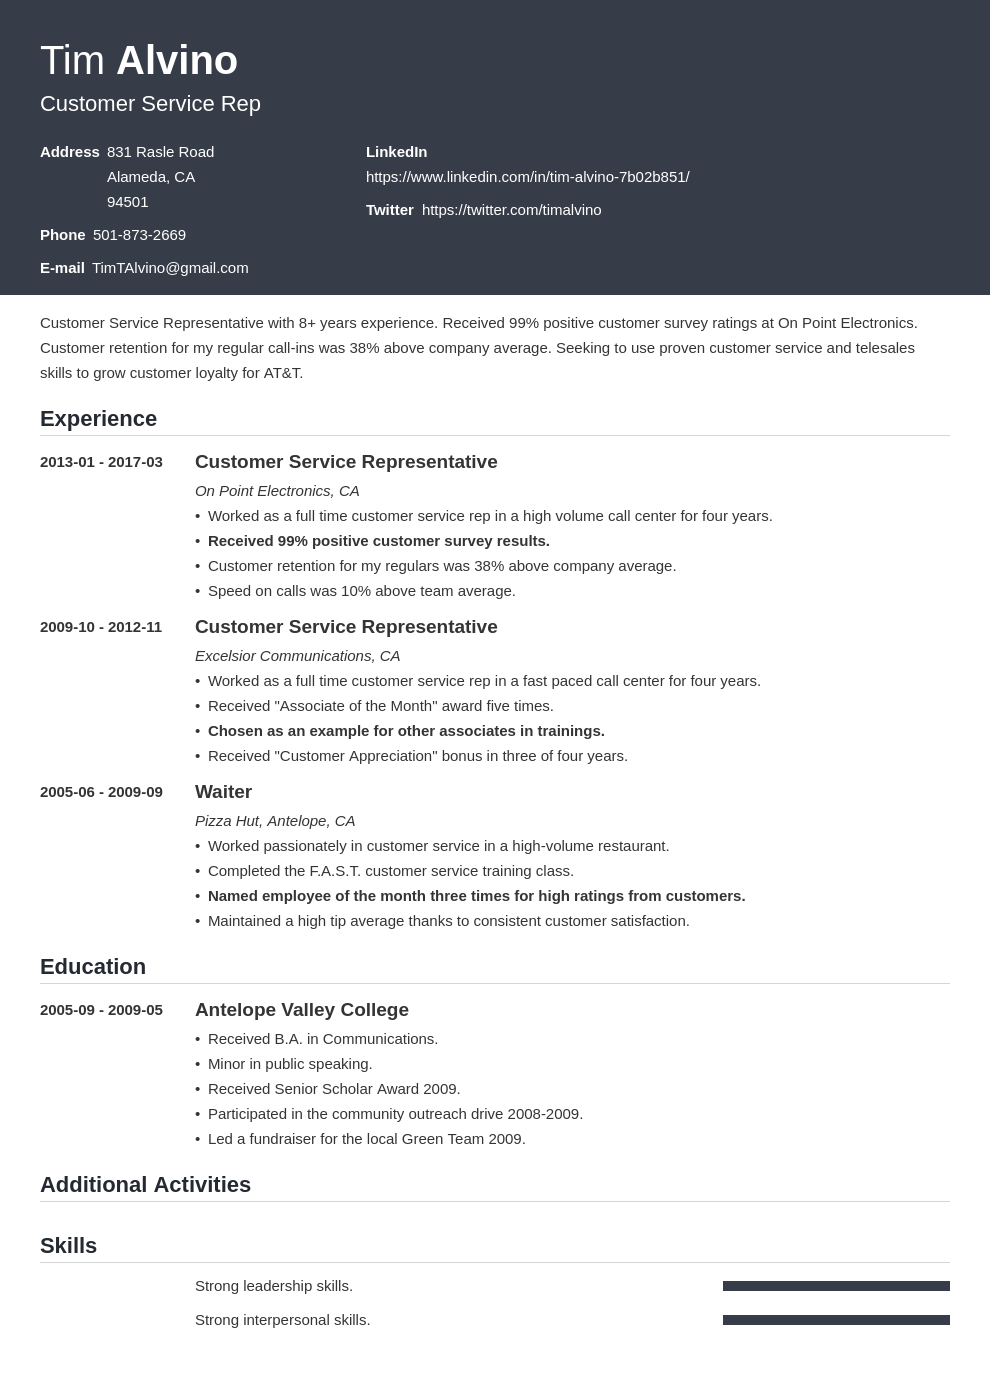 Customer Service Resume: Sample and Writing Guide [20+ Examples]